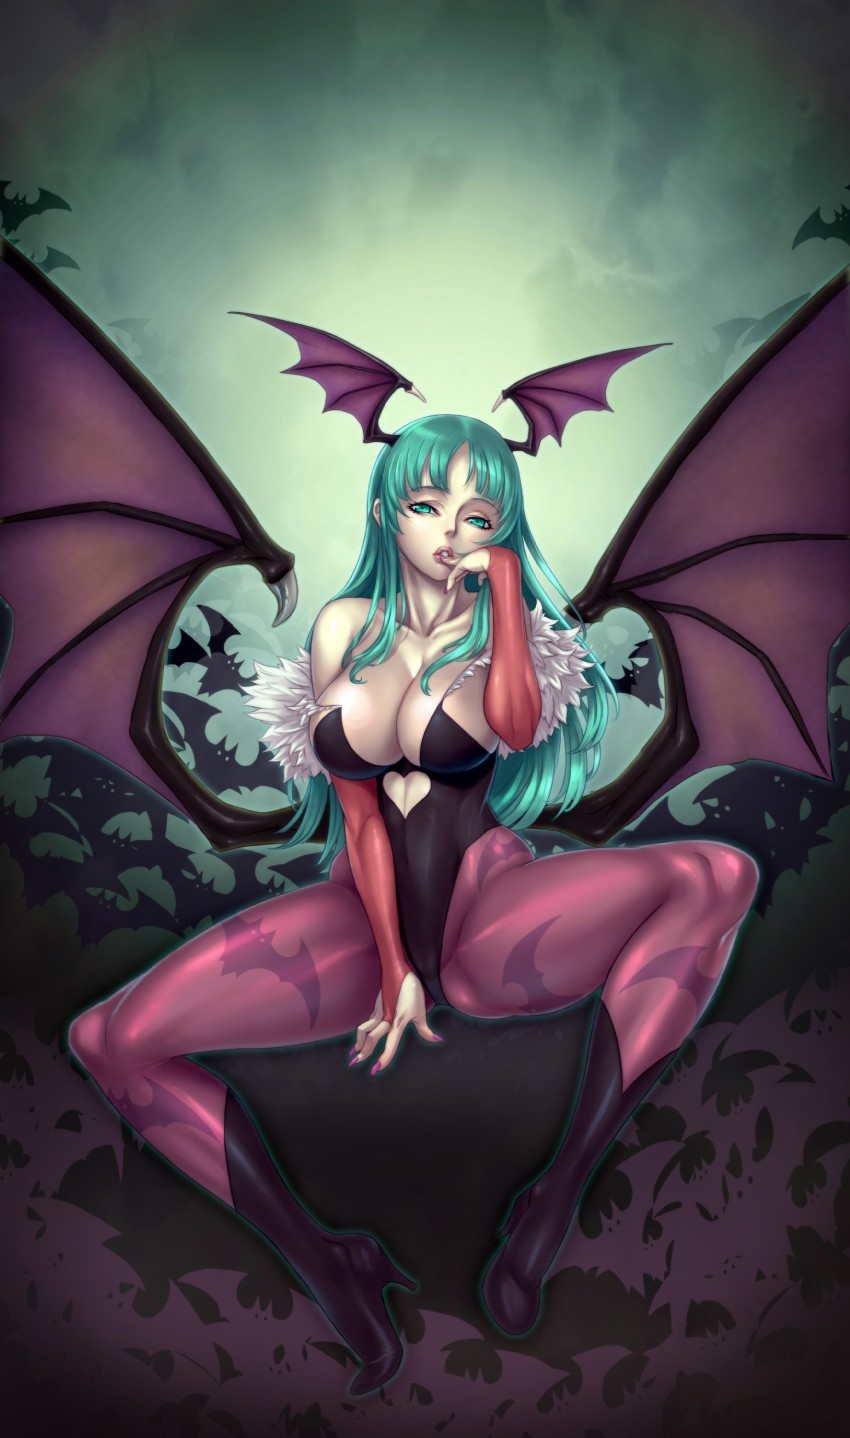 Darkstalkers Morrigan Aensland bare HD Wallpaper